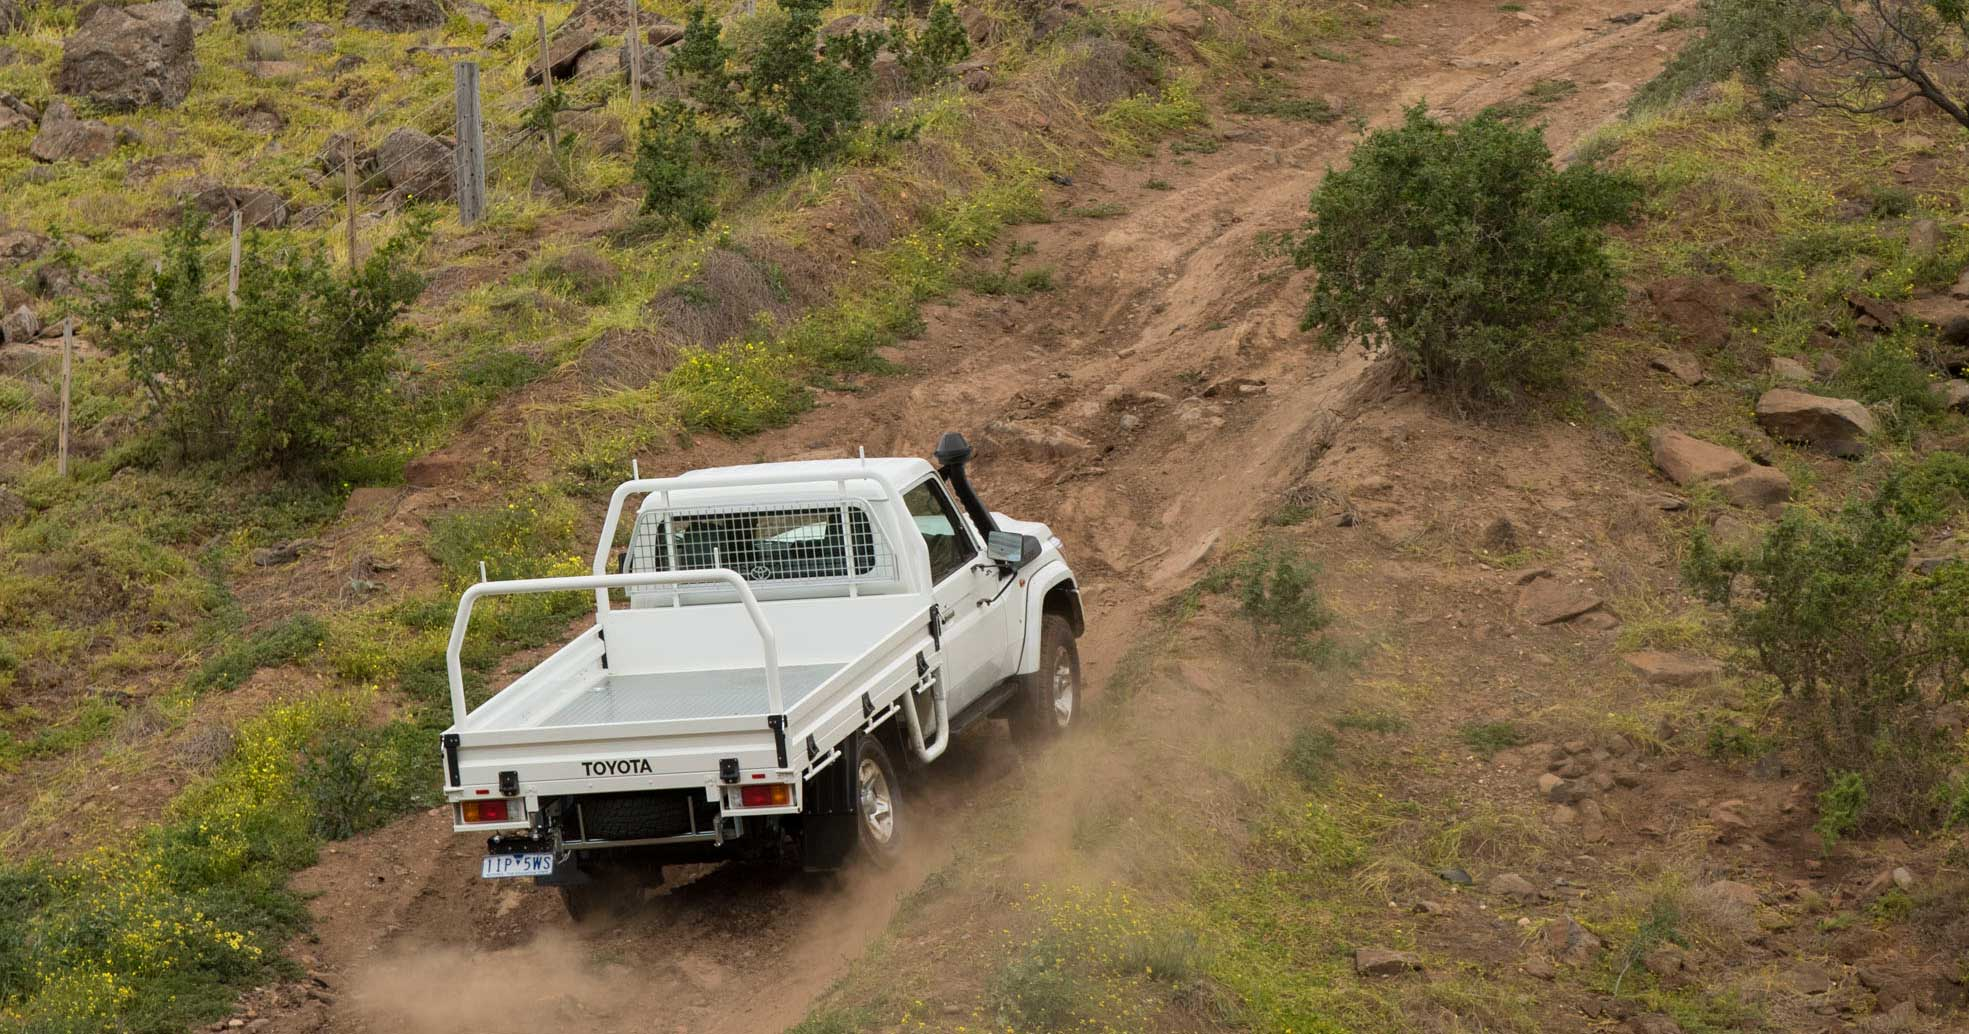 Toyota Landcruiser 70 series travelling up steep hill